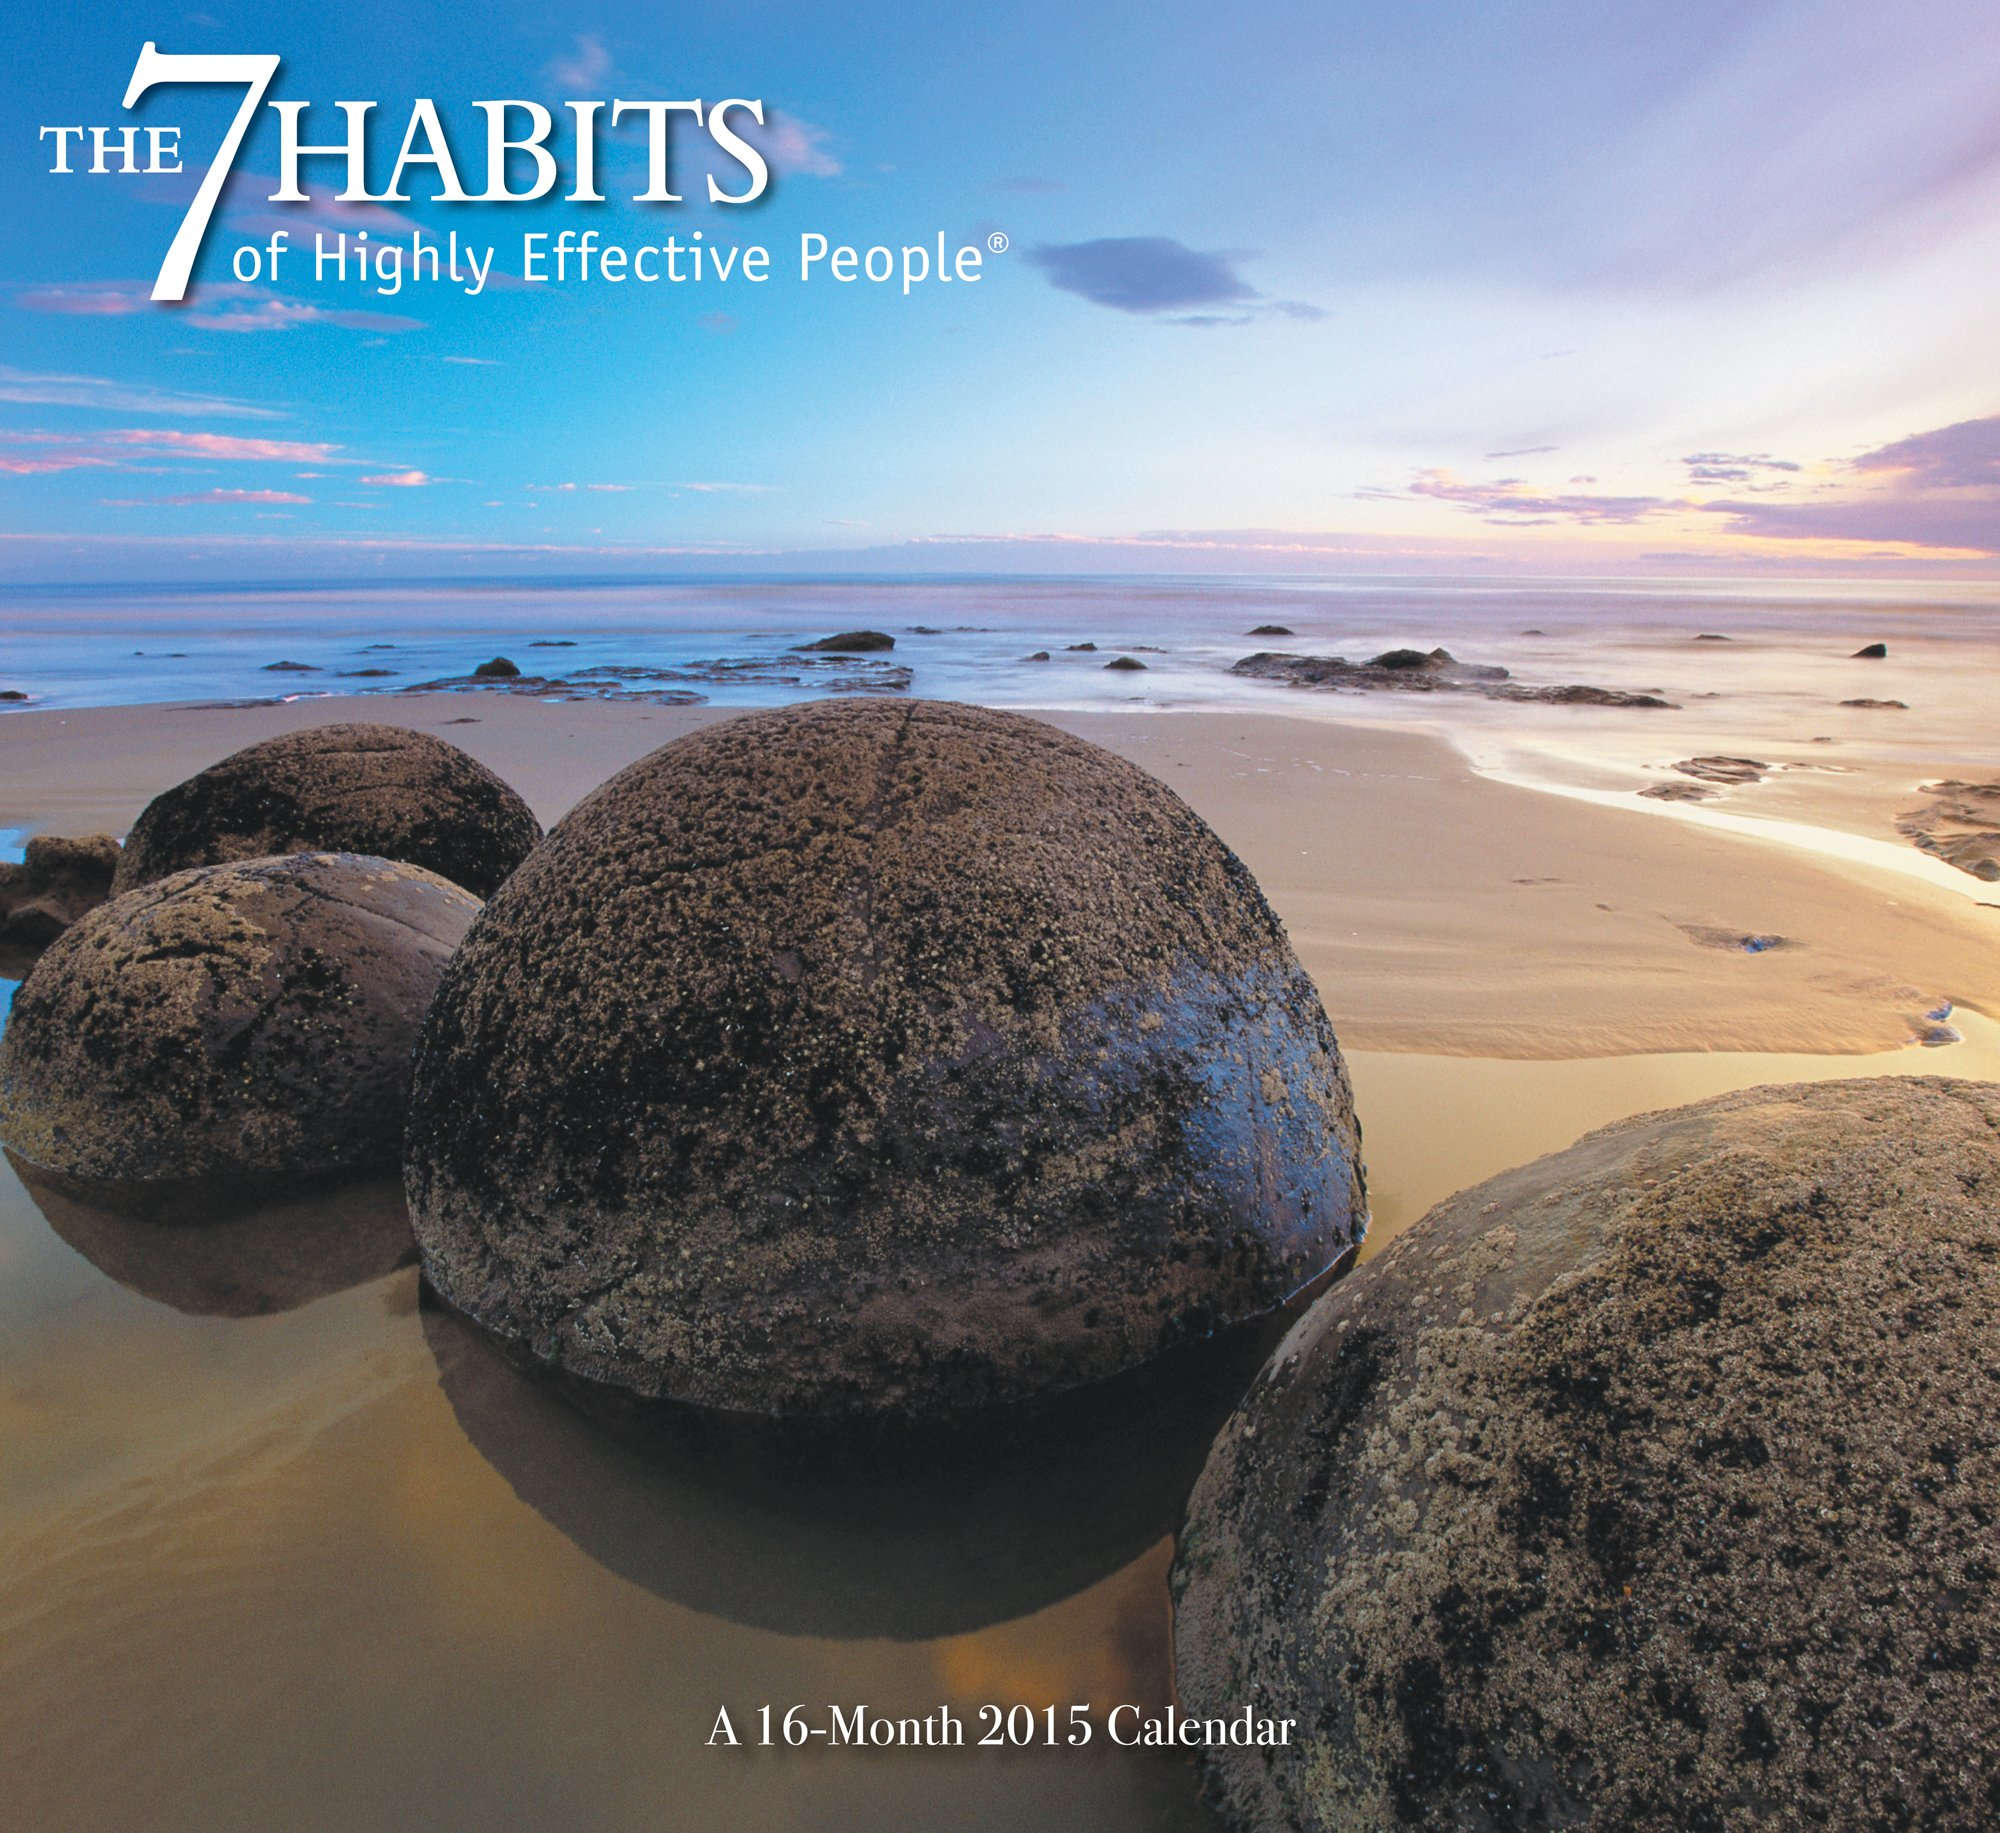 Download The 7 Habits of Highly Effective People Wall Calendar (2015) pdf epub